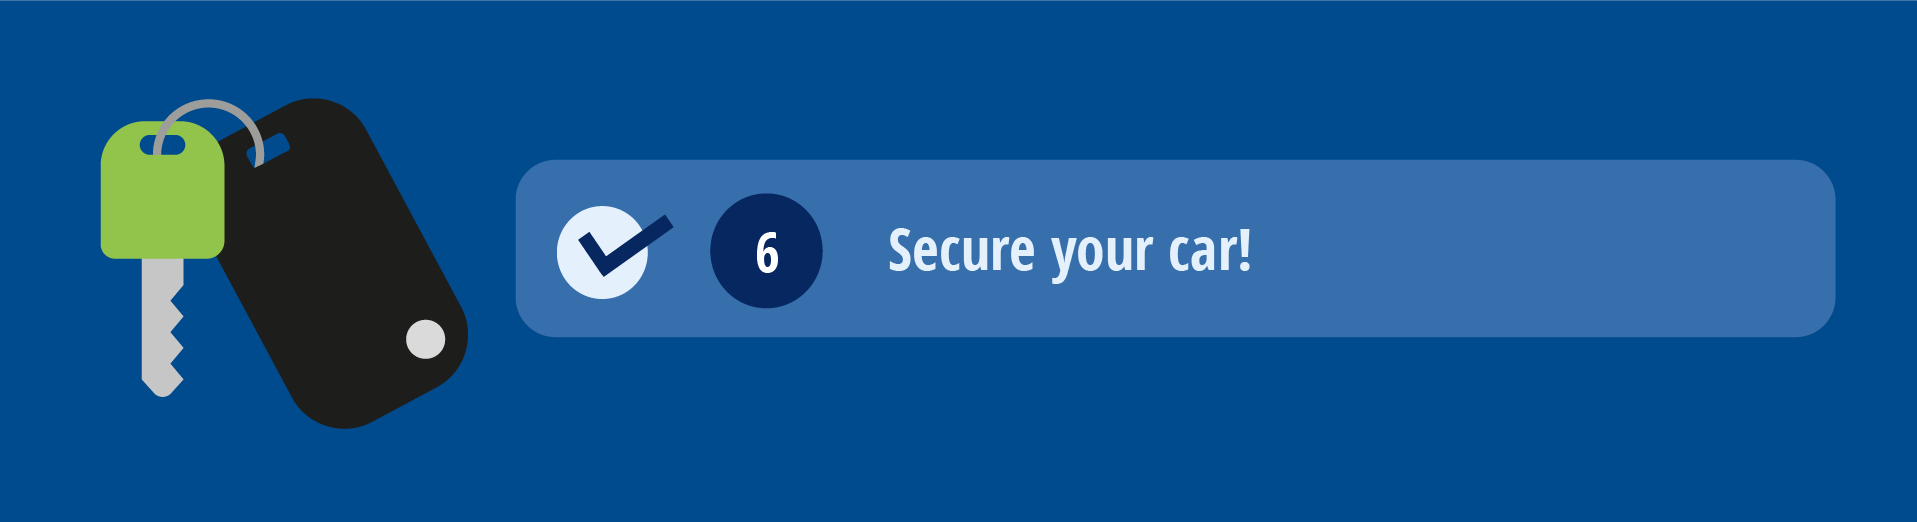 Secure your car!